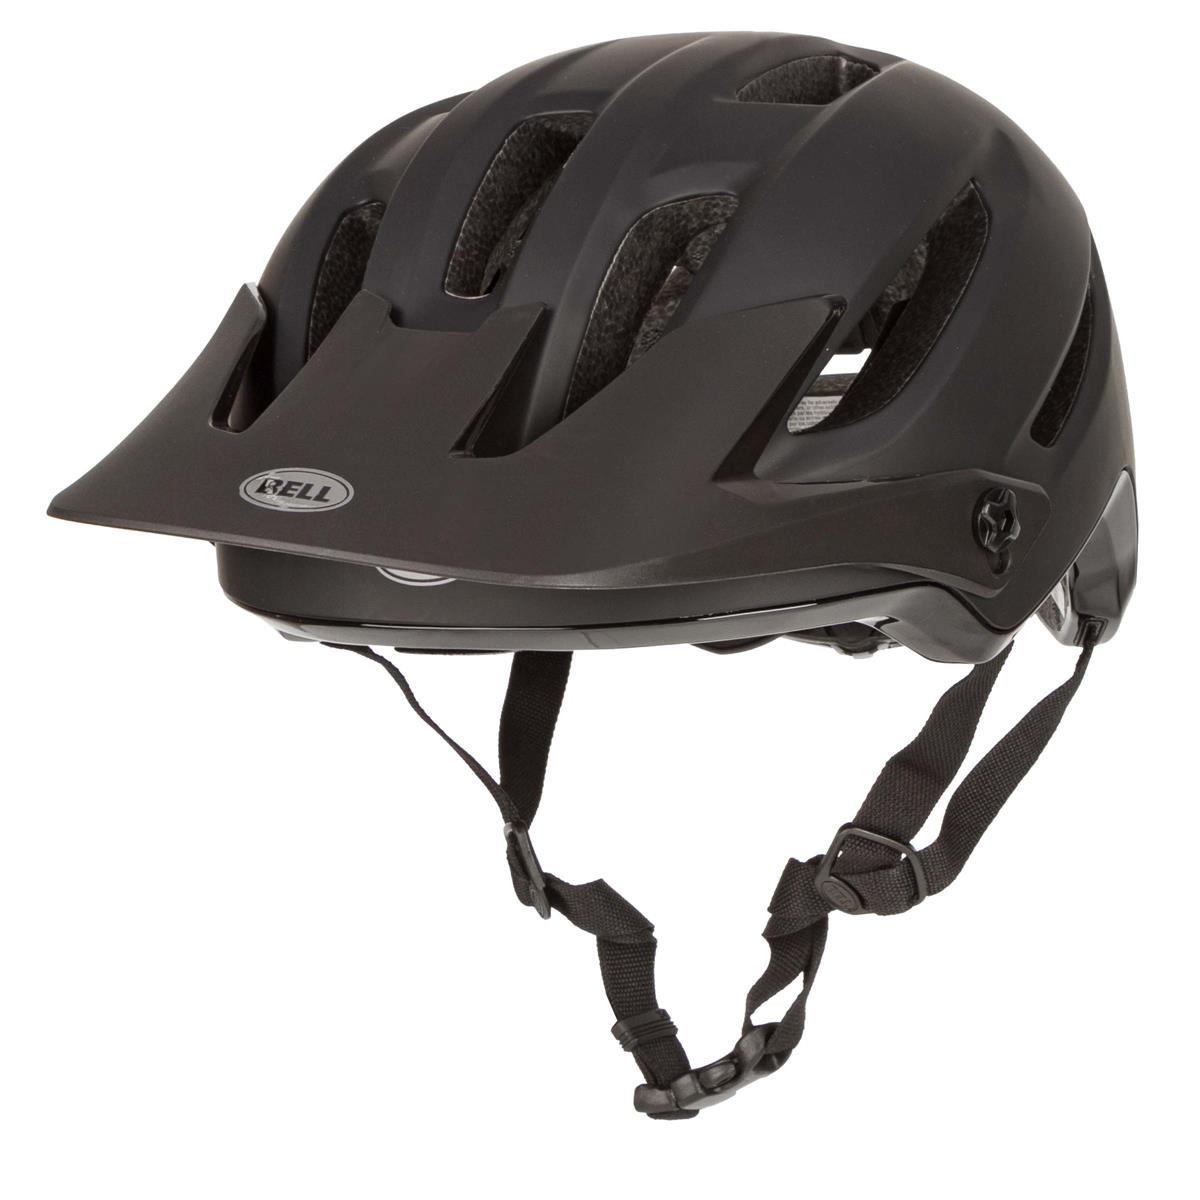 bell enduro mtb helm 4forty matt gloss schwarz 2019. Black Bedroom Furniture Sets. Home Design Ideas